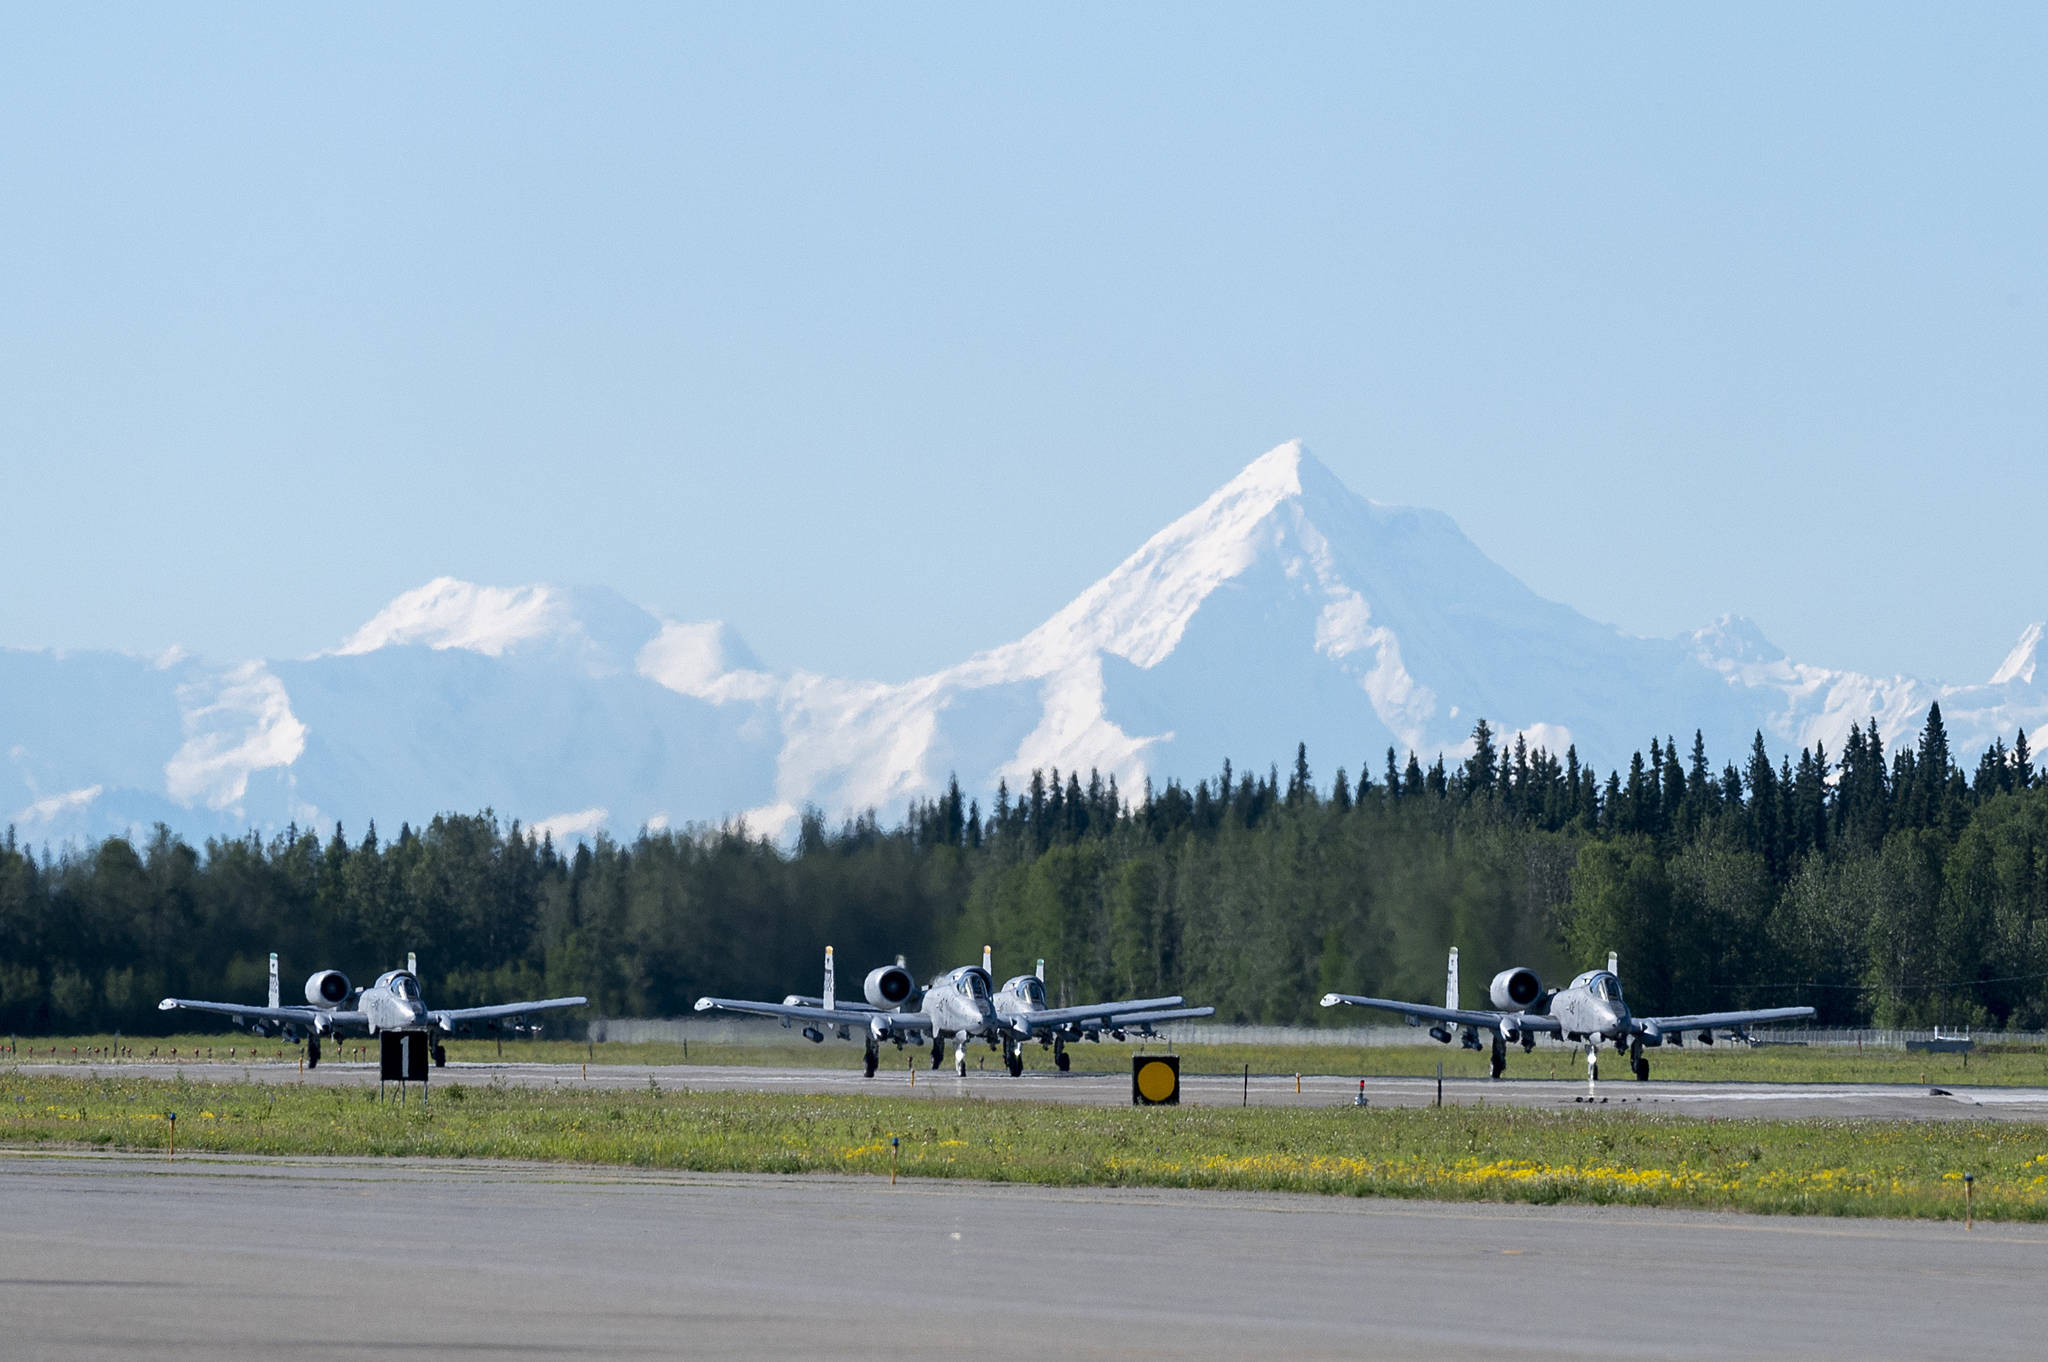 A-10 Thunderbolt II aircraft assigned to the 25th Fighter Squadron taxi during exercise Red Flag-Alaska 21-02 at Eielson Air Force Base on June 14.  Tech. Sgt. Peter Thompson / U.S. Air Force